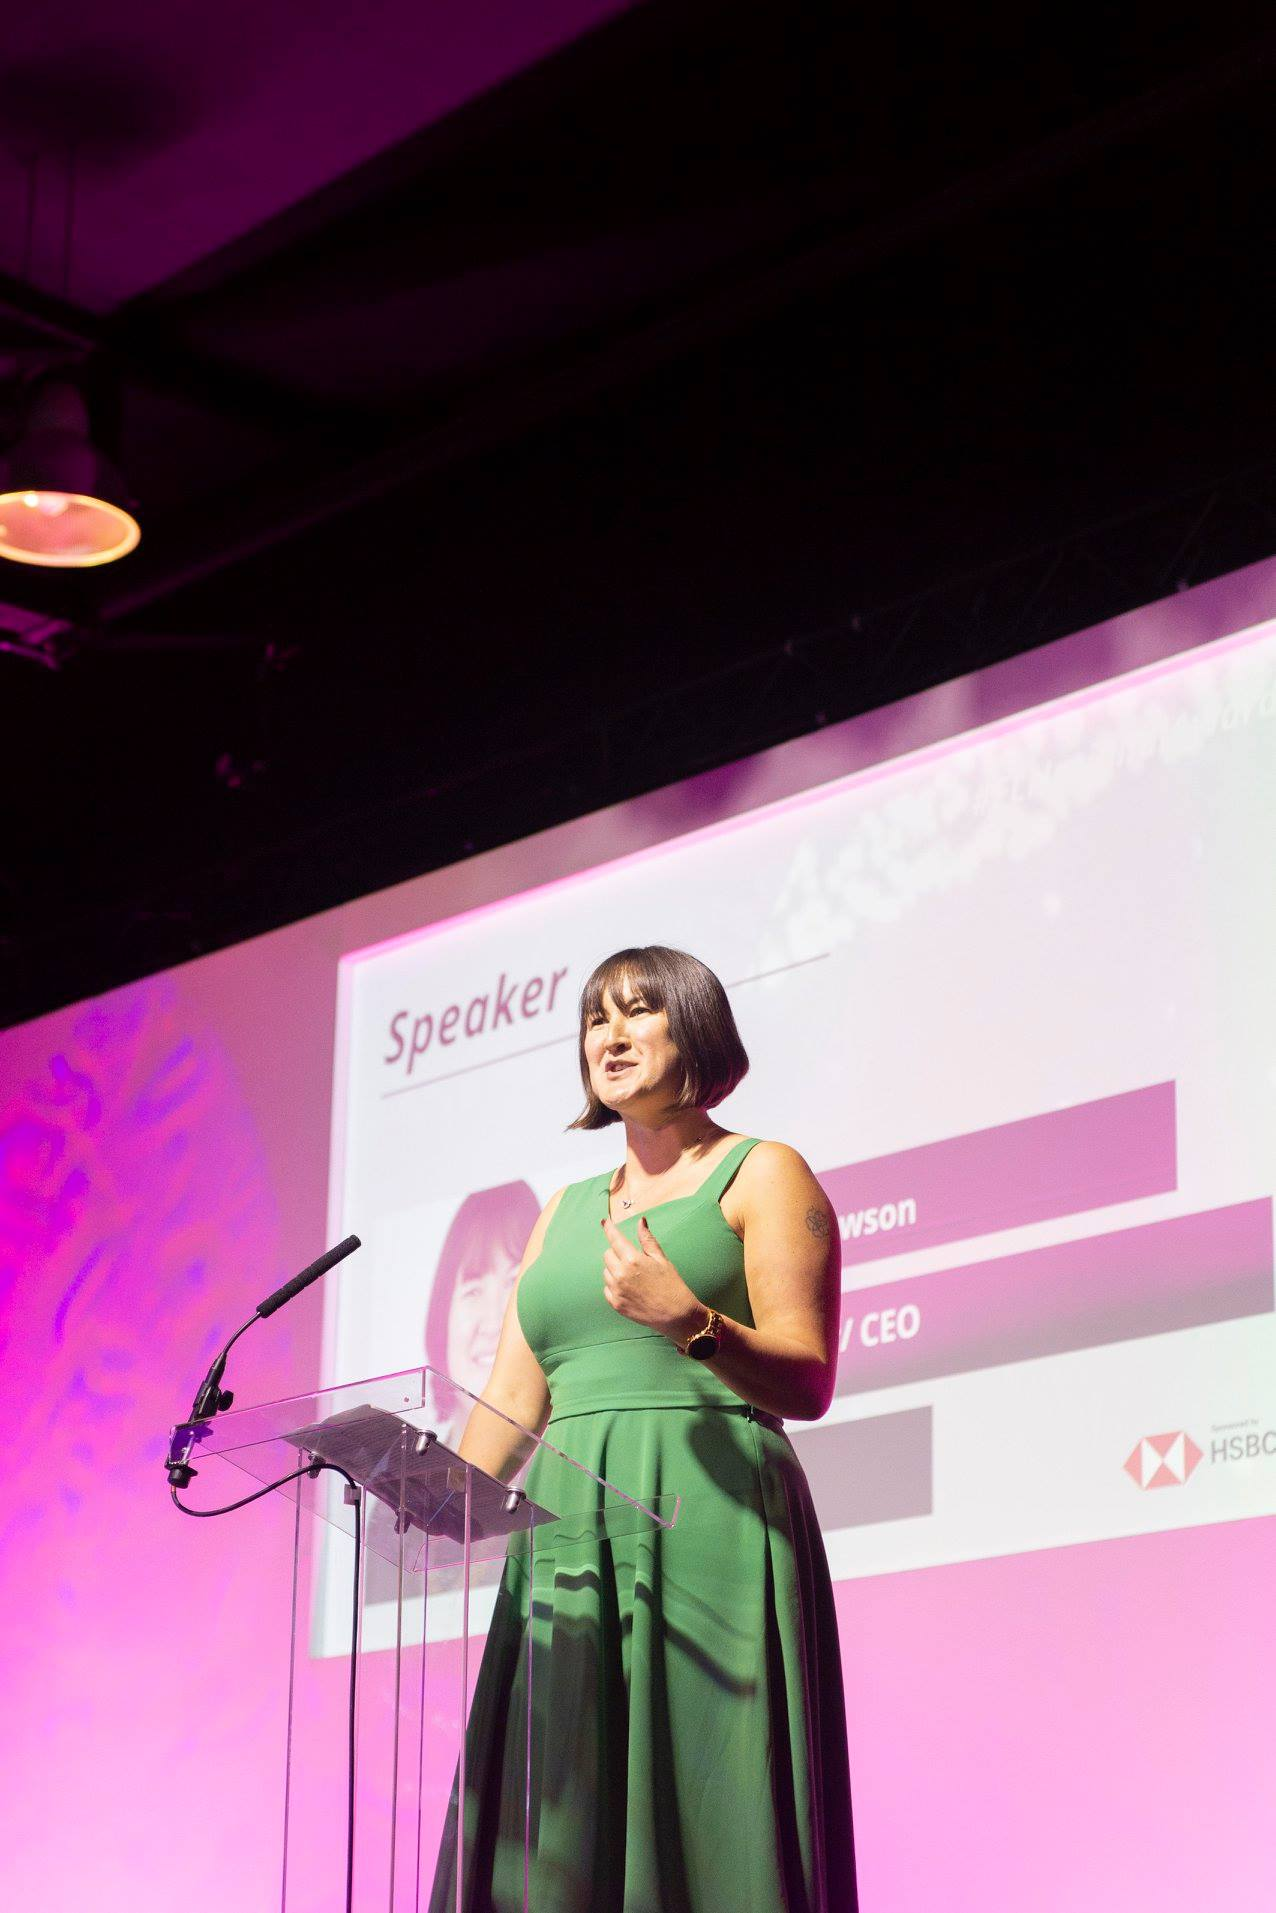 Susanna Lawson, CEO/ Co-founder of One File UK and overall winner of the The Forward Ladies National Awards 2017 speaking at The Grand Final Forward Ladies Awards 2018.